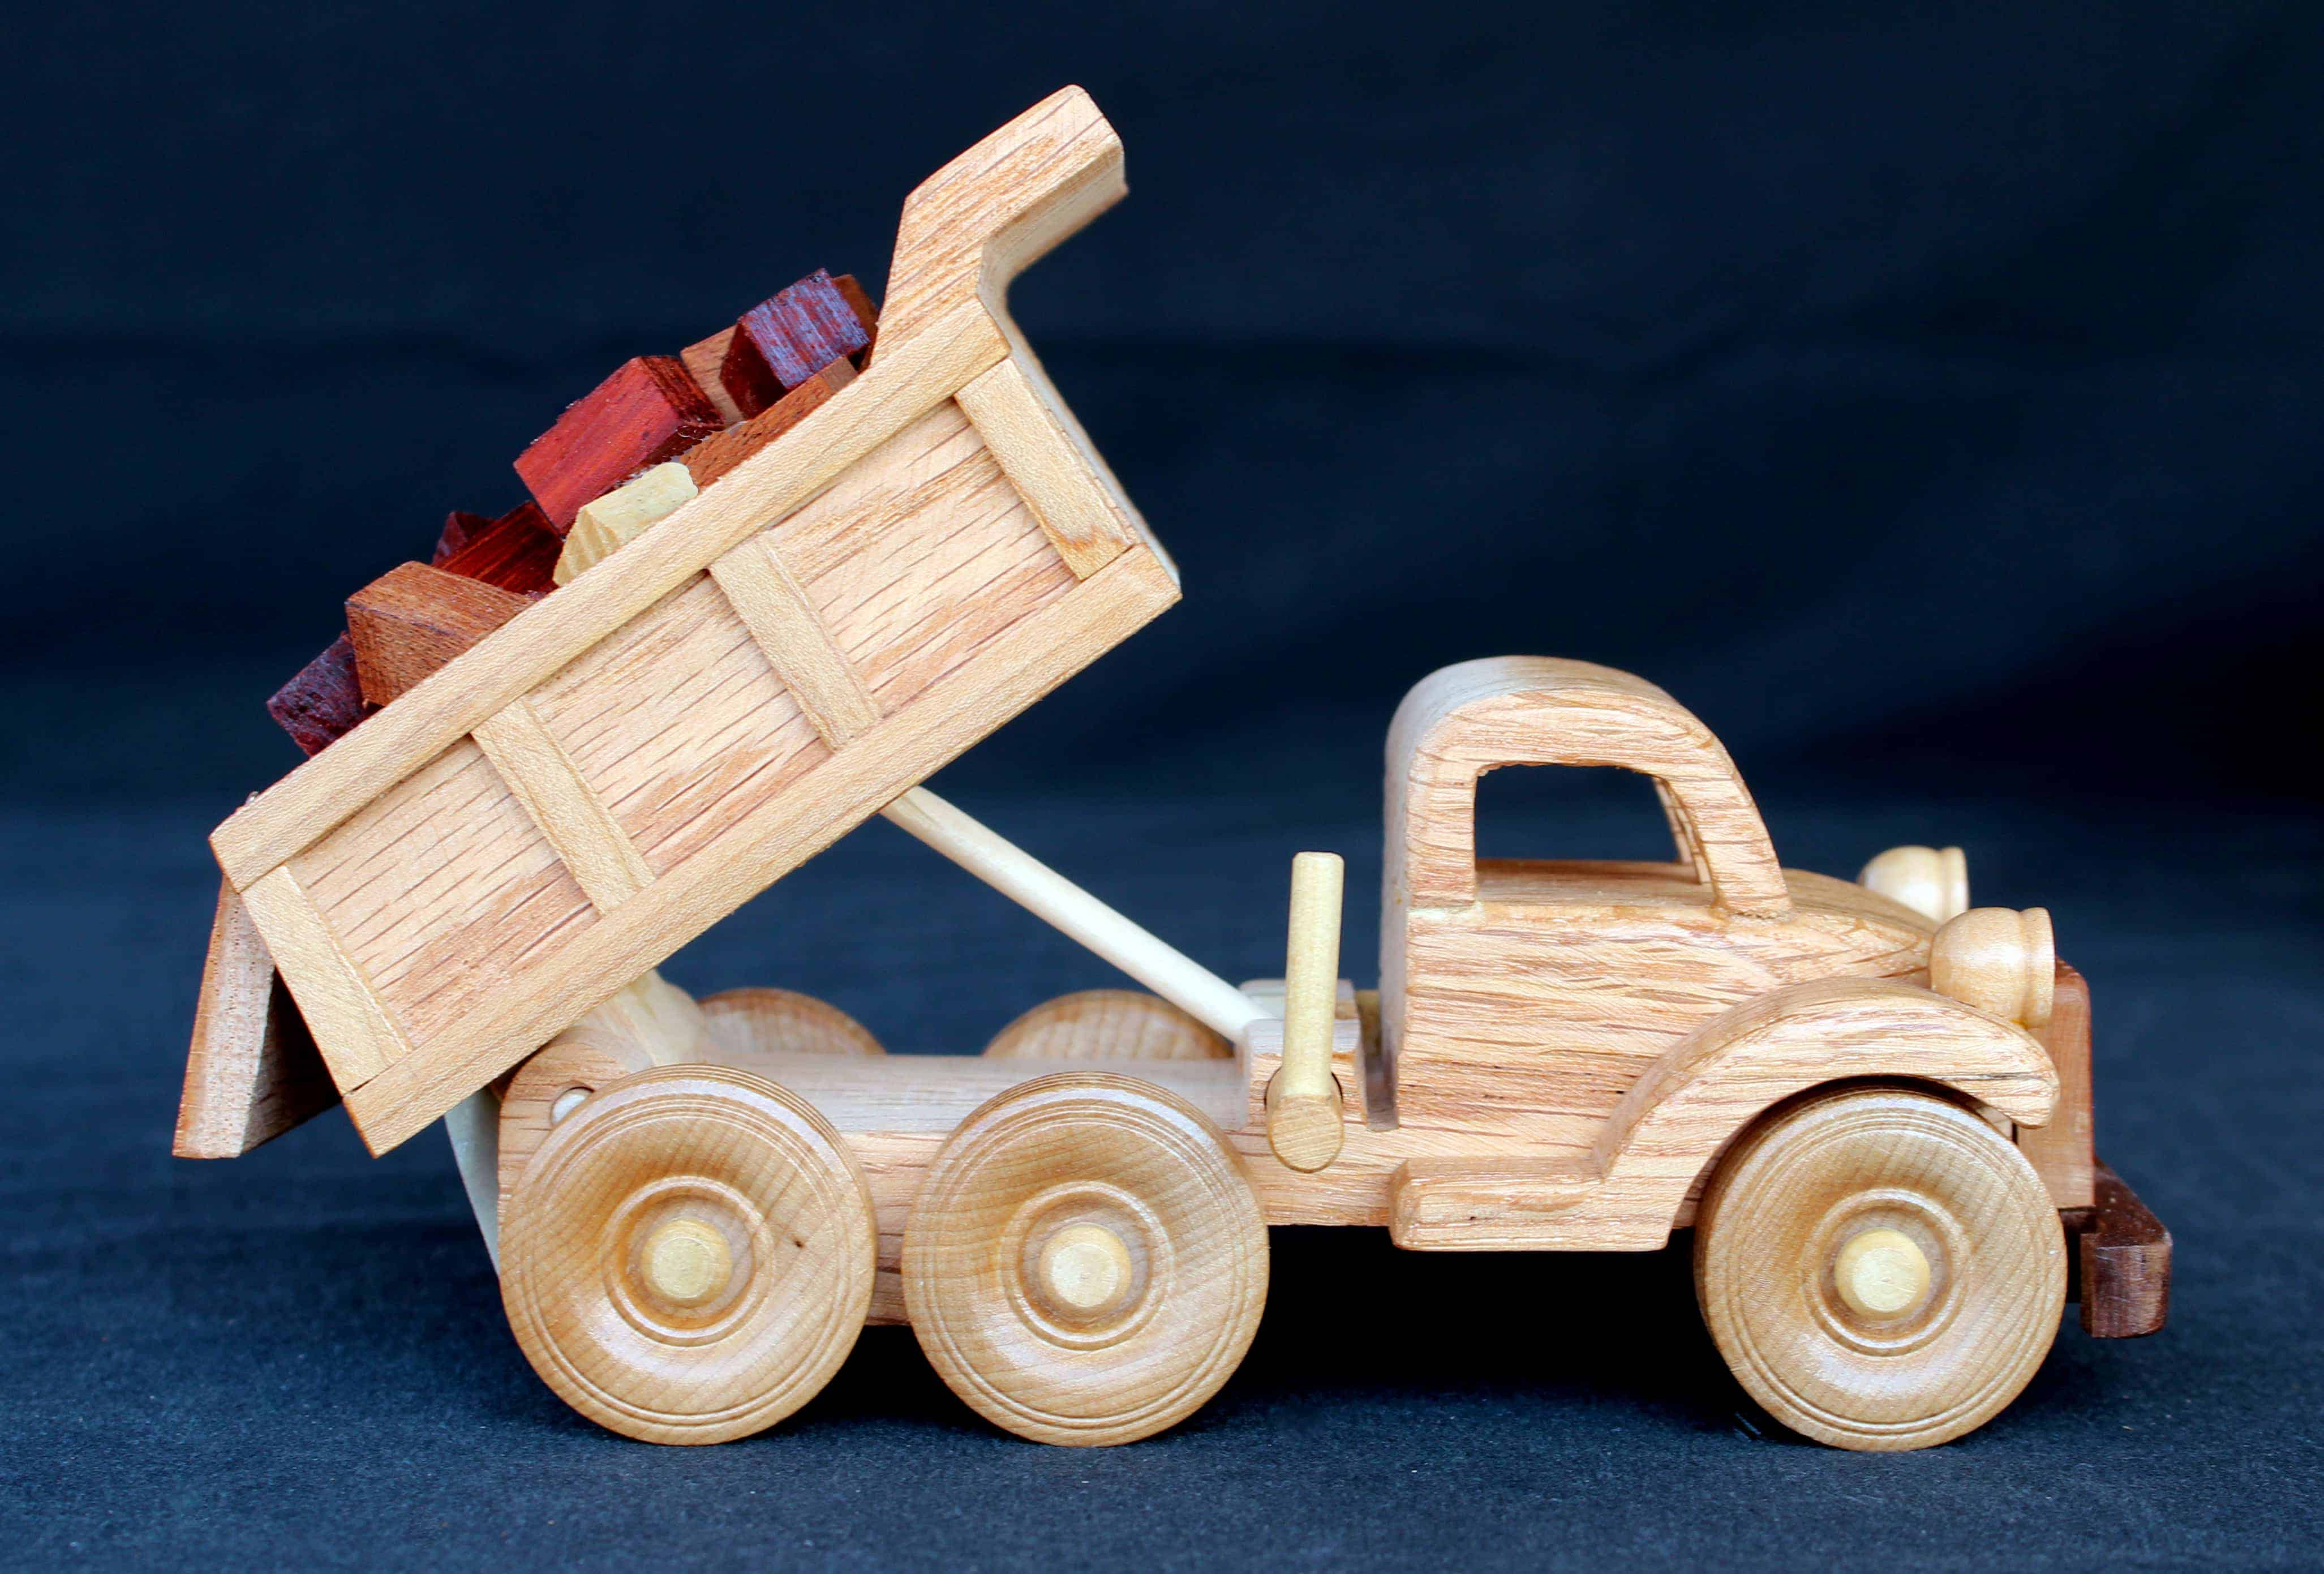 Plump N Tuff Vehicles Woodworking Plans Forest Street